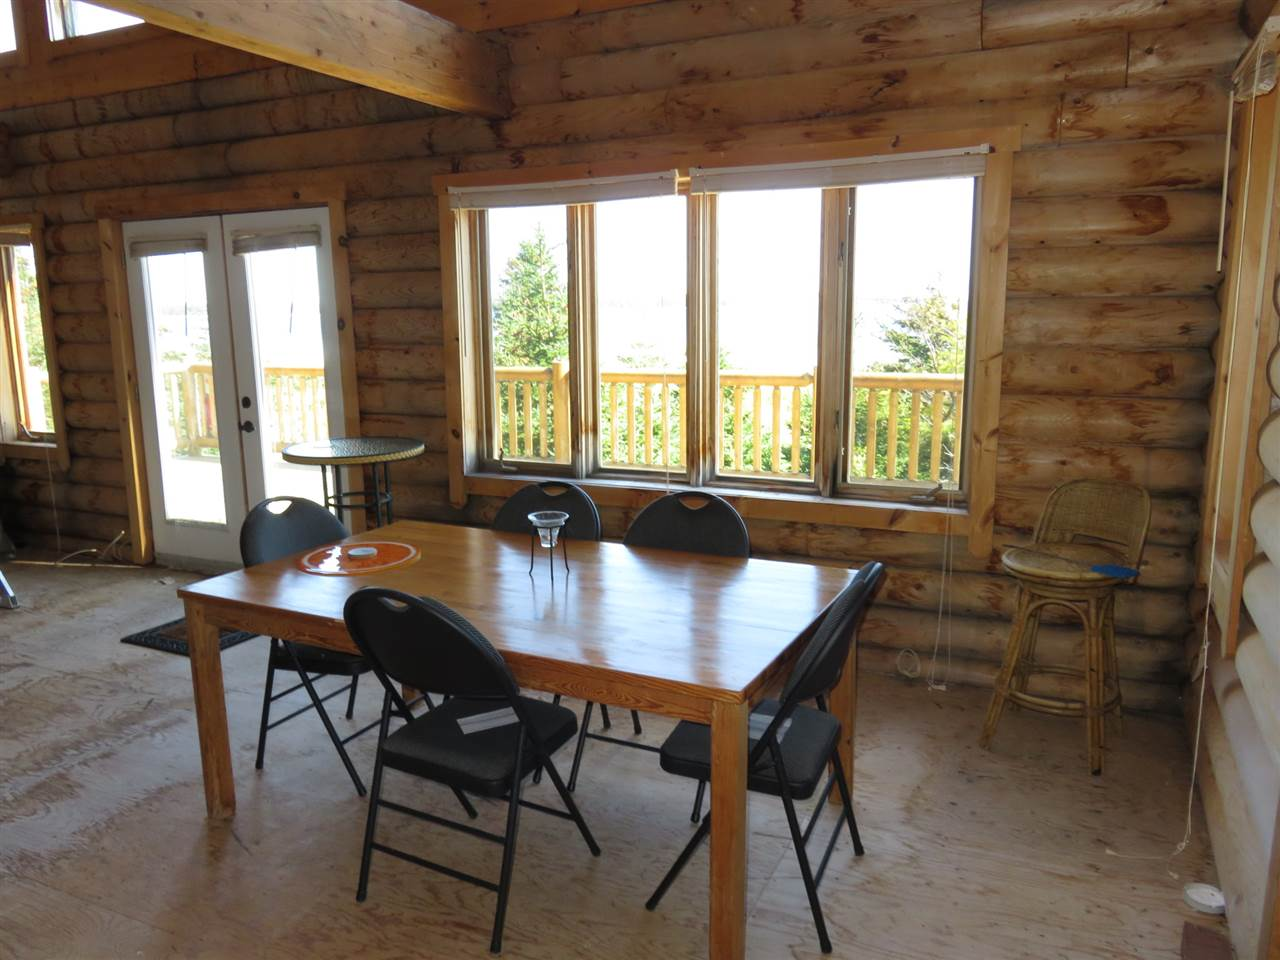 Photo 12: Photos: 198 SEASIDE Drive in Louis Head: 407-Shelburne County Residential for sale (South Shore)  : MLS® # 4686576